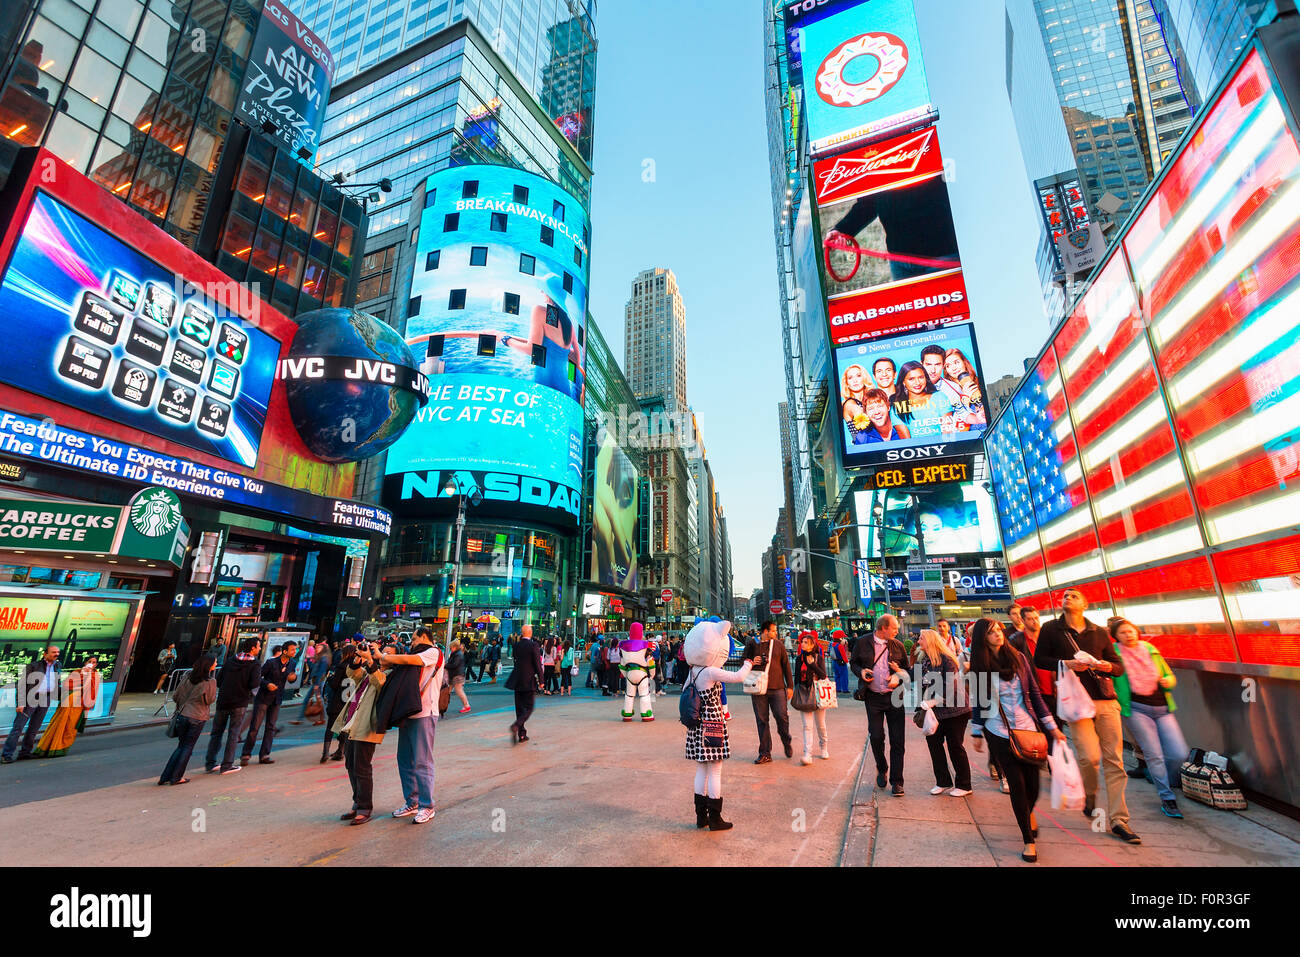 New York City Times Square By Night Stock Photo Alamy